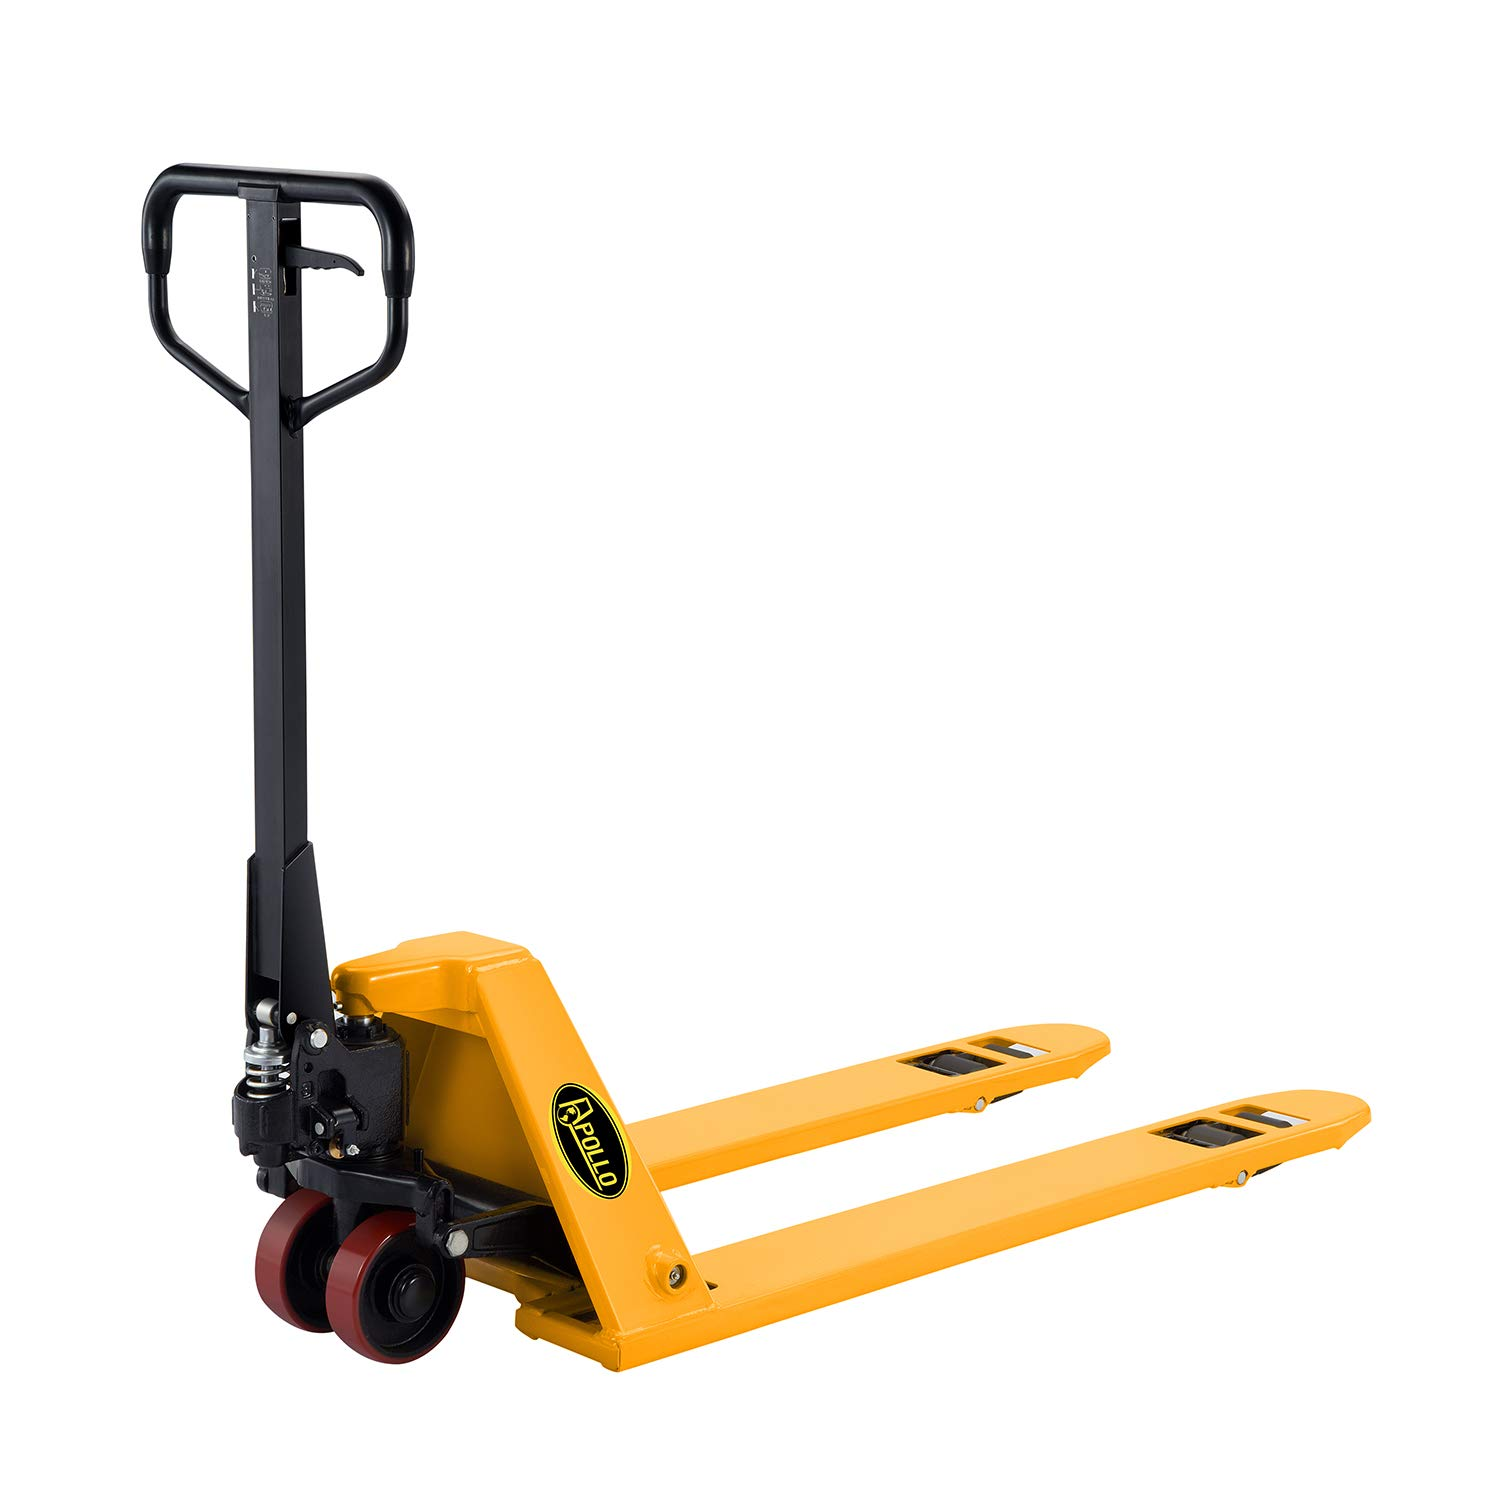 Apollolift 1.4'' Low Profile Manual Pallet Jack/Pallet Truck 2200lbs Capacity 48''L×27''W BFL-2